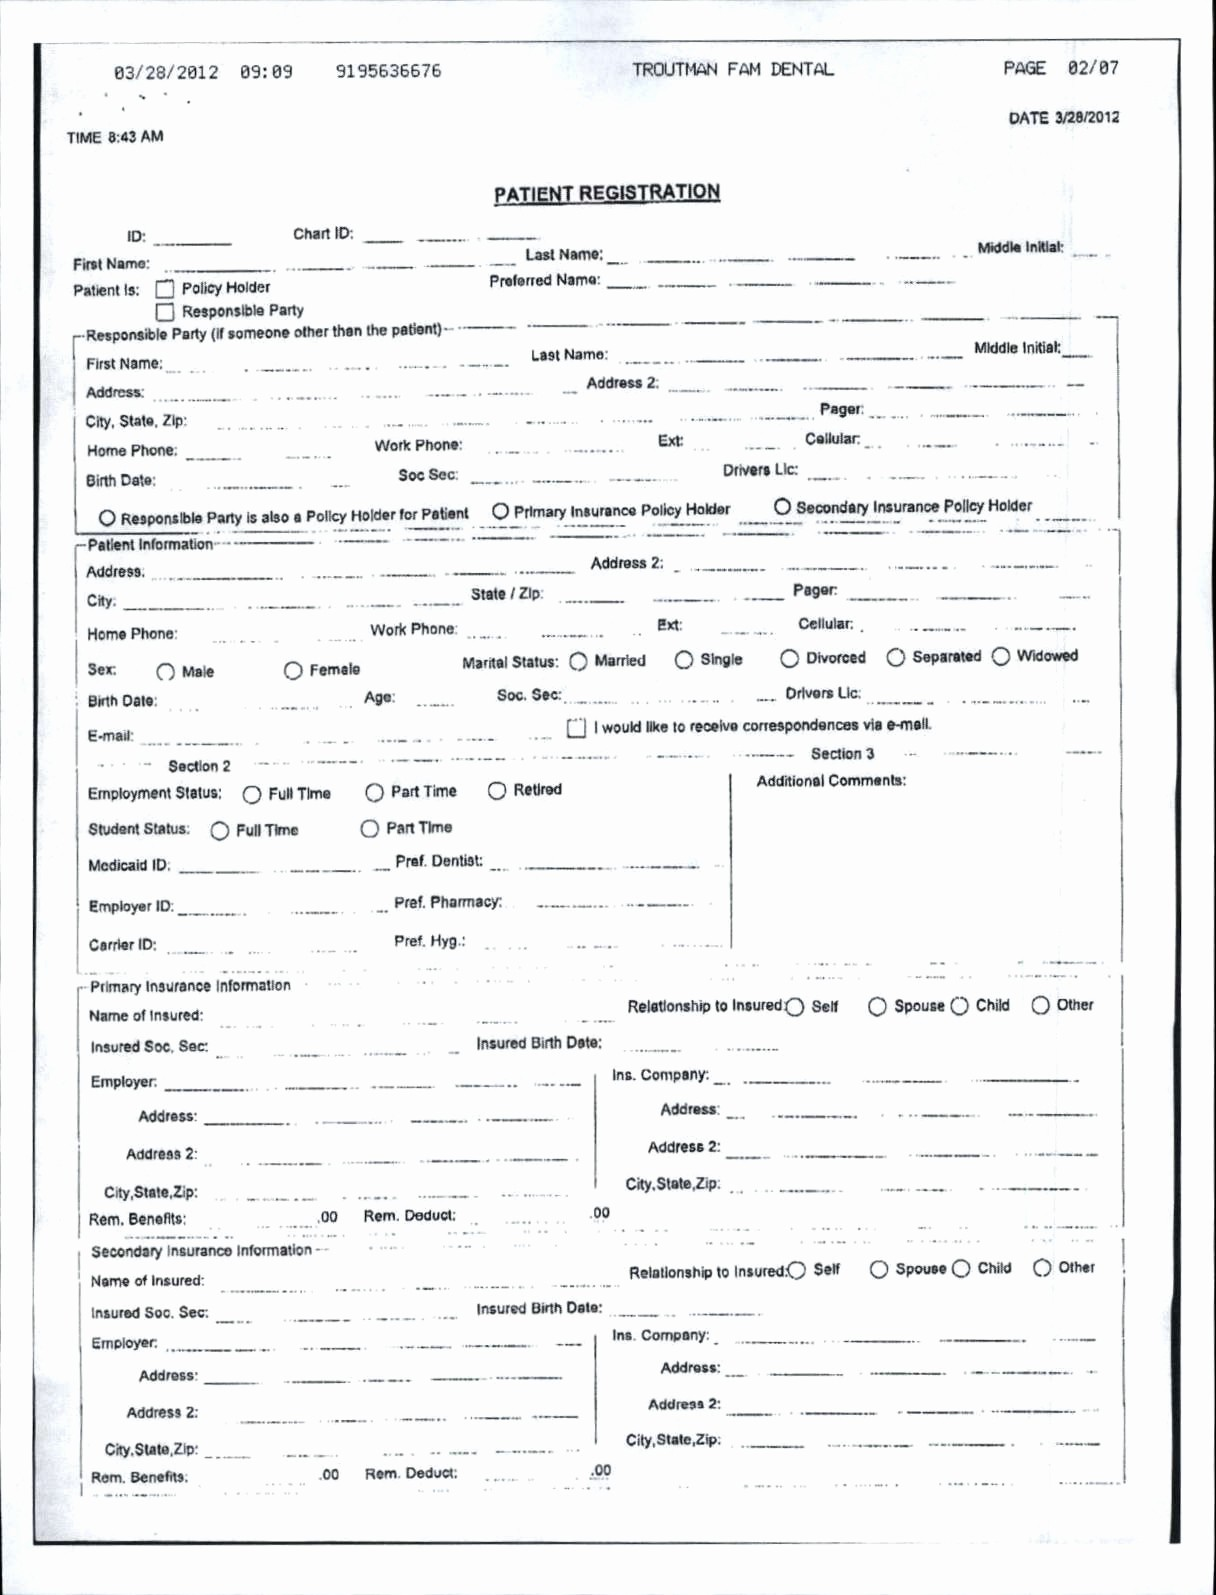 New Patient Medical History forms Awesome Troutman Family Dentistry Mebane Nc